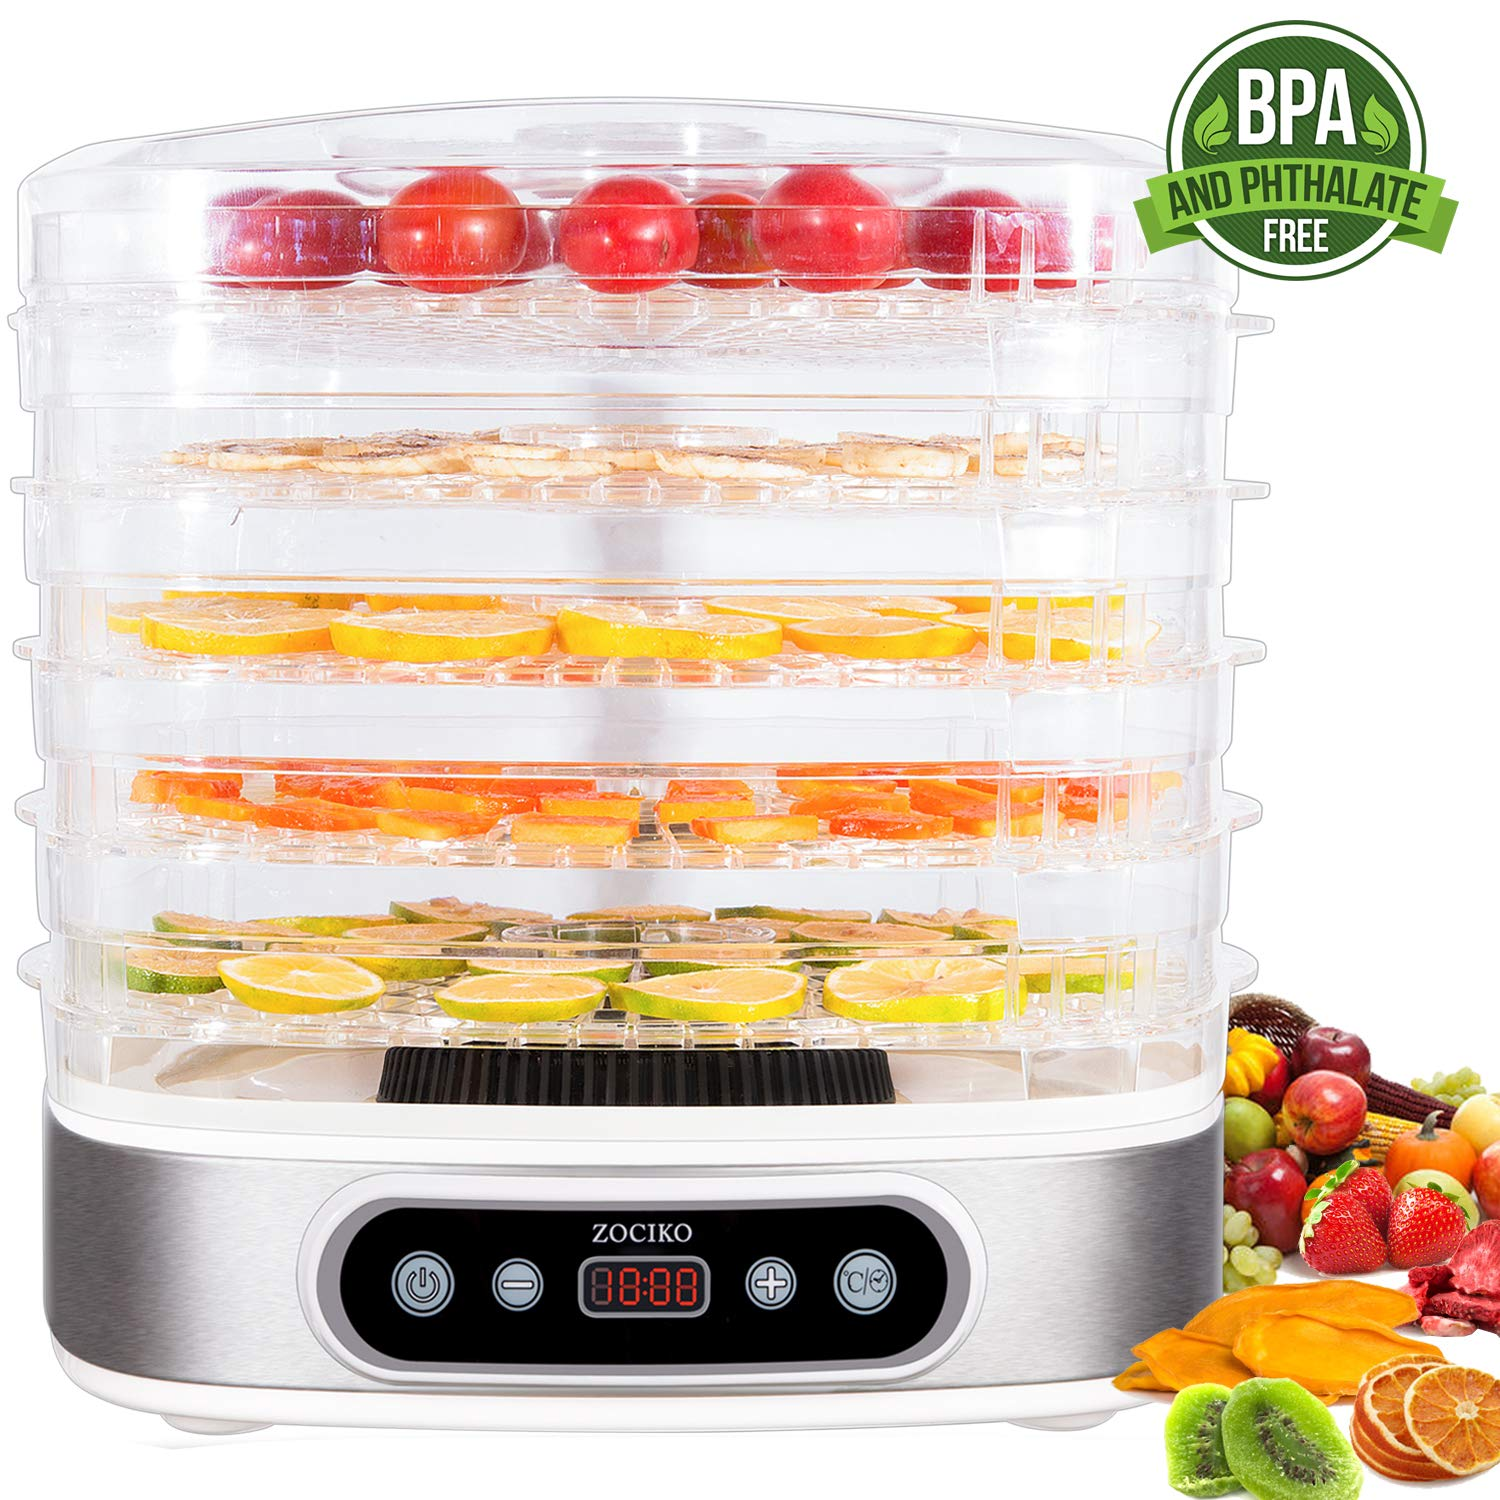 zociko Food Dehydrator Machine, Food Dehydrator Dehydrated Dog Food Dryer for Jerky/Meat/Beef/Fruit/Vegetable Electric Food Preserver, 5 Stackable Trays, Digital Timer 450W, BPA Free Dishwasher Safe by zociko